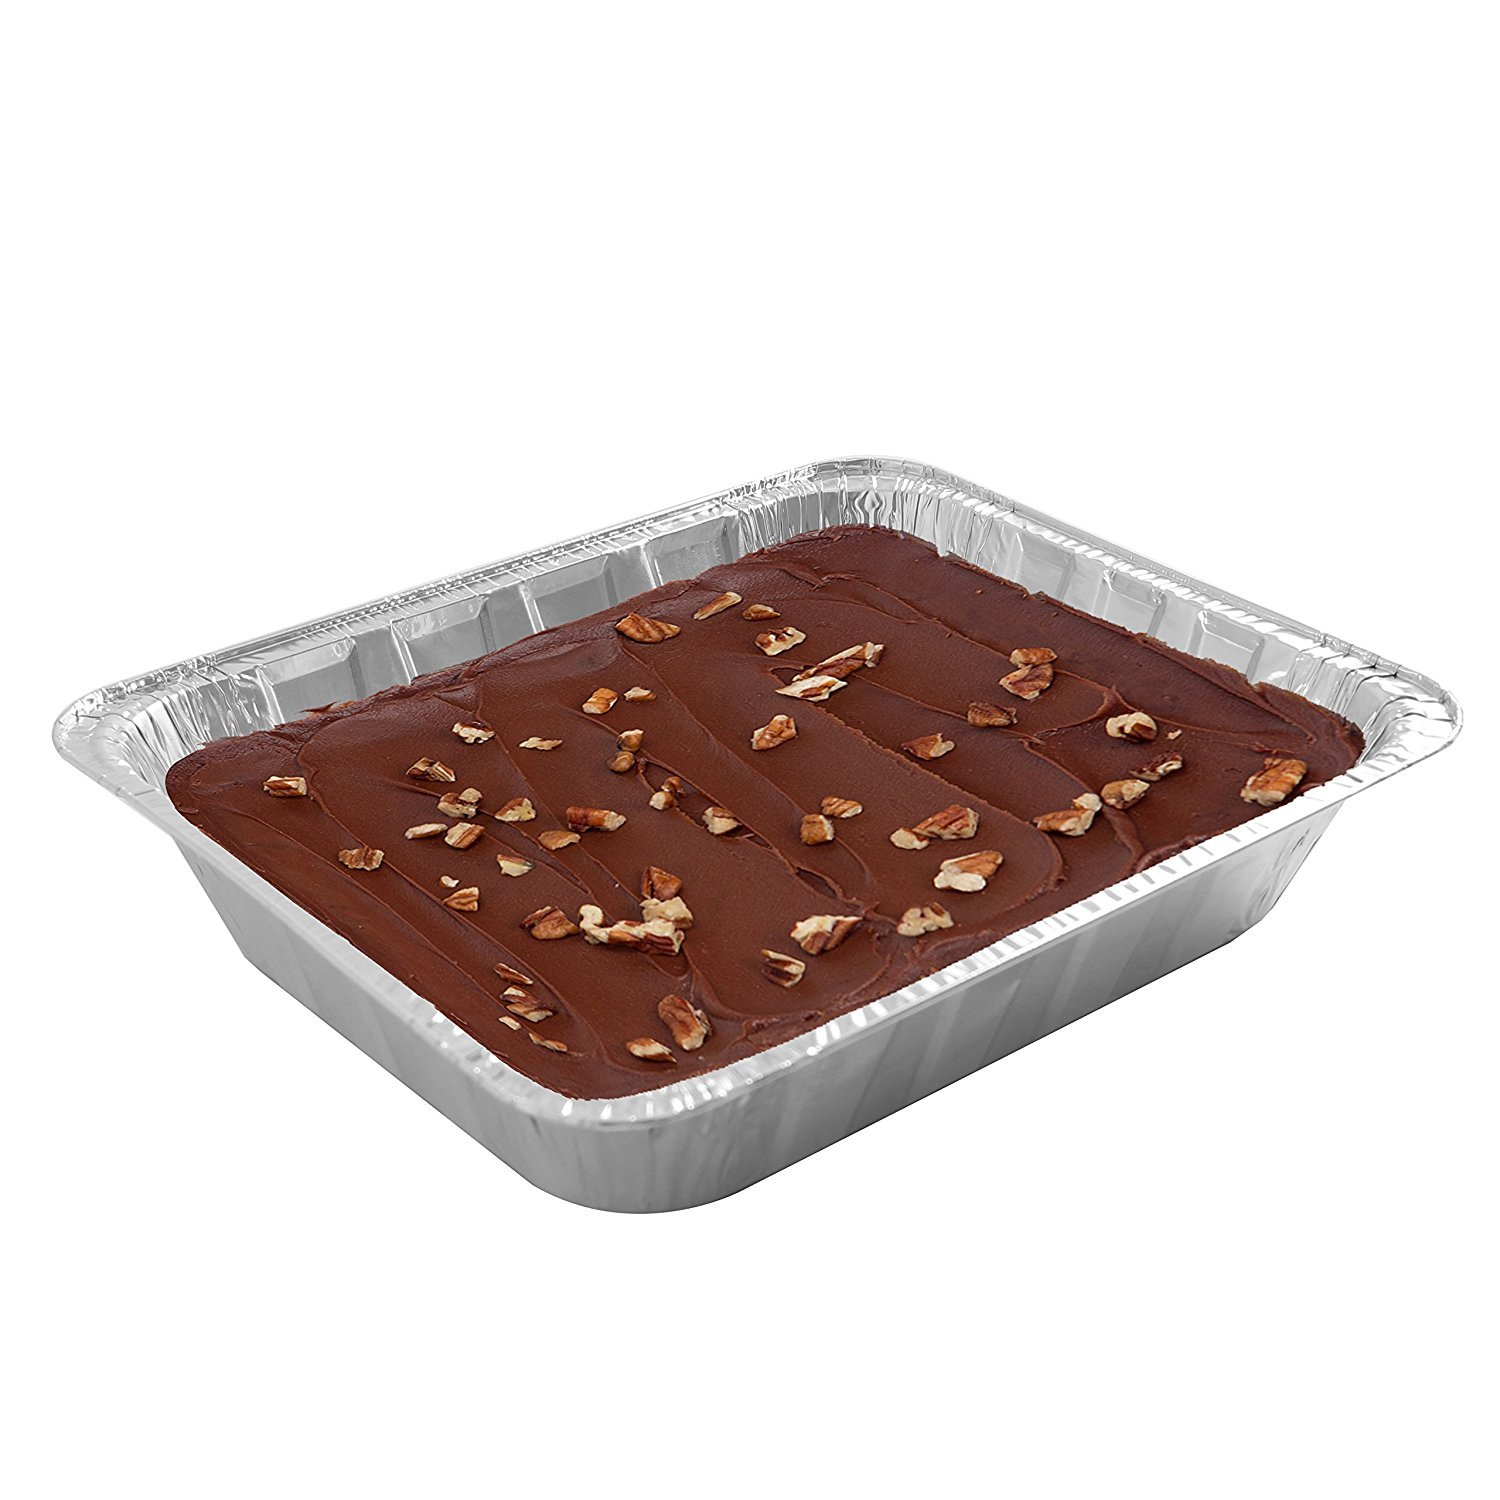 Jetfoil Aluminum Foil Steam Table Pans With Lids   Perfect for Catering, Party Supplies & Suitable for Broiling, Baking, Cakes and Pies - 9 x 13 Half size Deep   Pack of 30 by Jetfoil (Image #2)